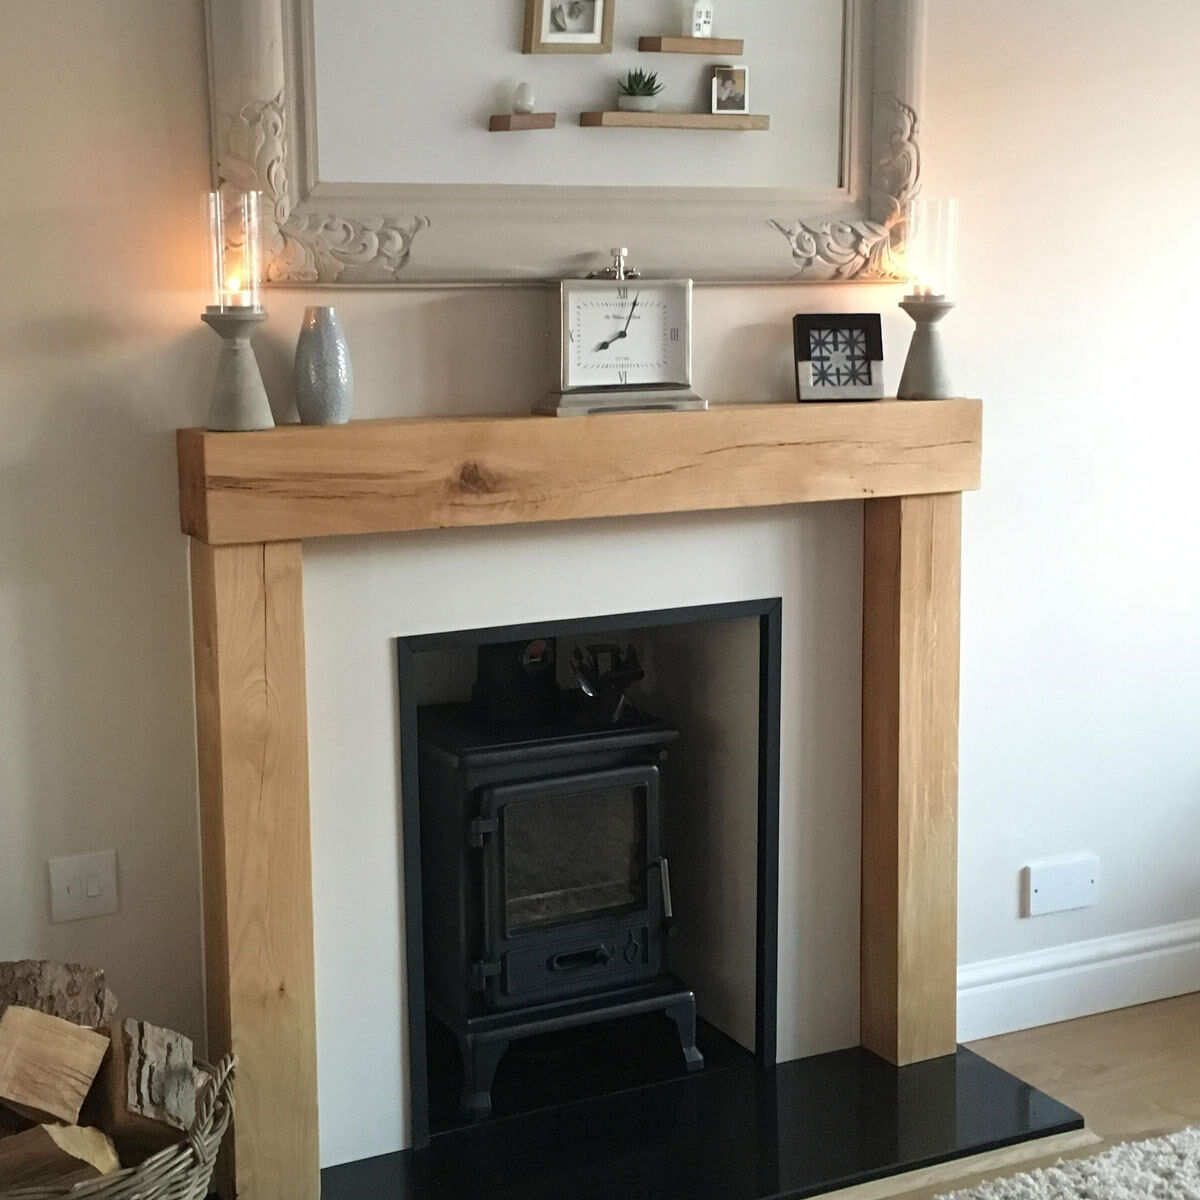 solid oak beam fire surround wooden fireplace mantel upstands log rh picclick co uk solid wood fireplace mantel charlotte nc solid wood fireplace mantel charlotte nc